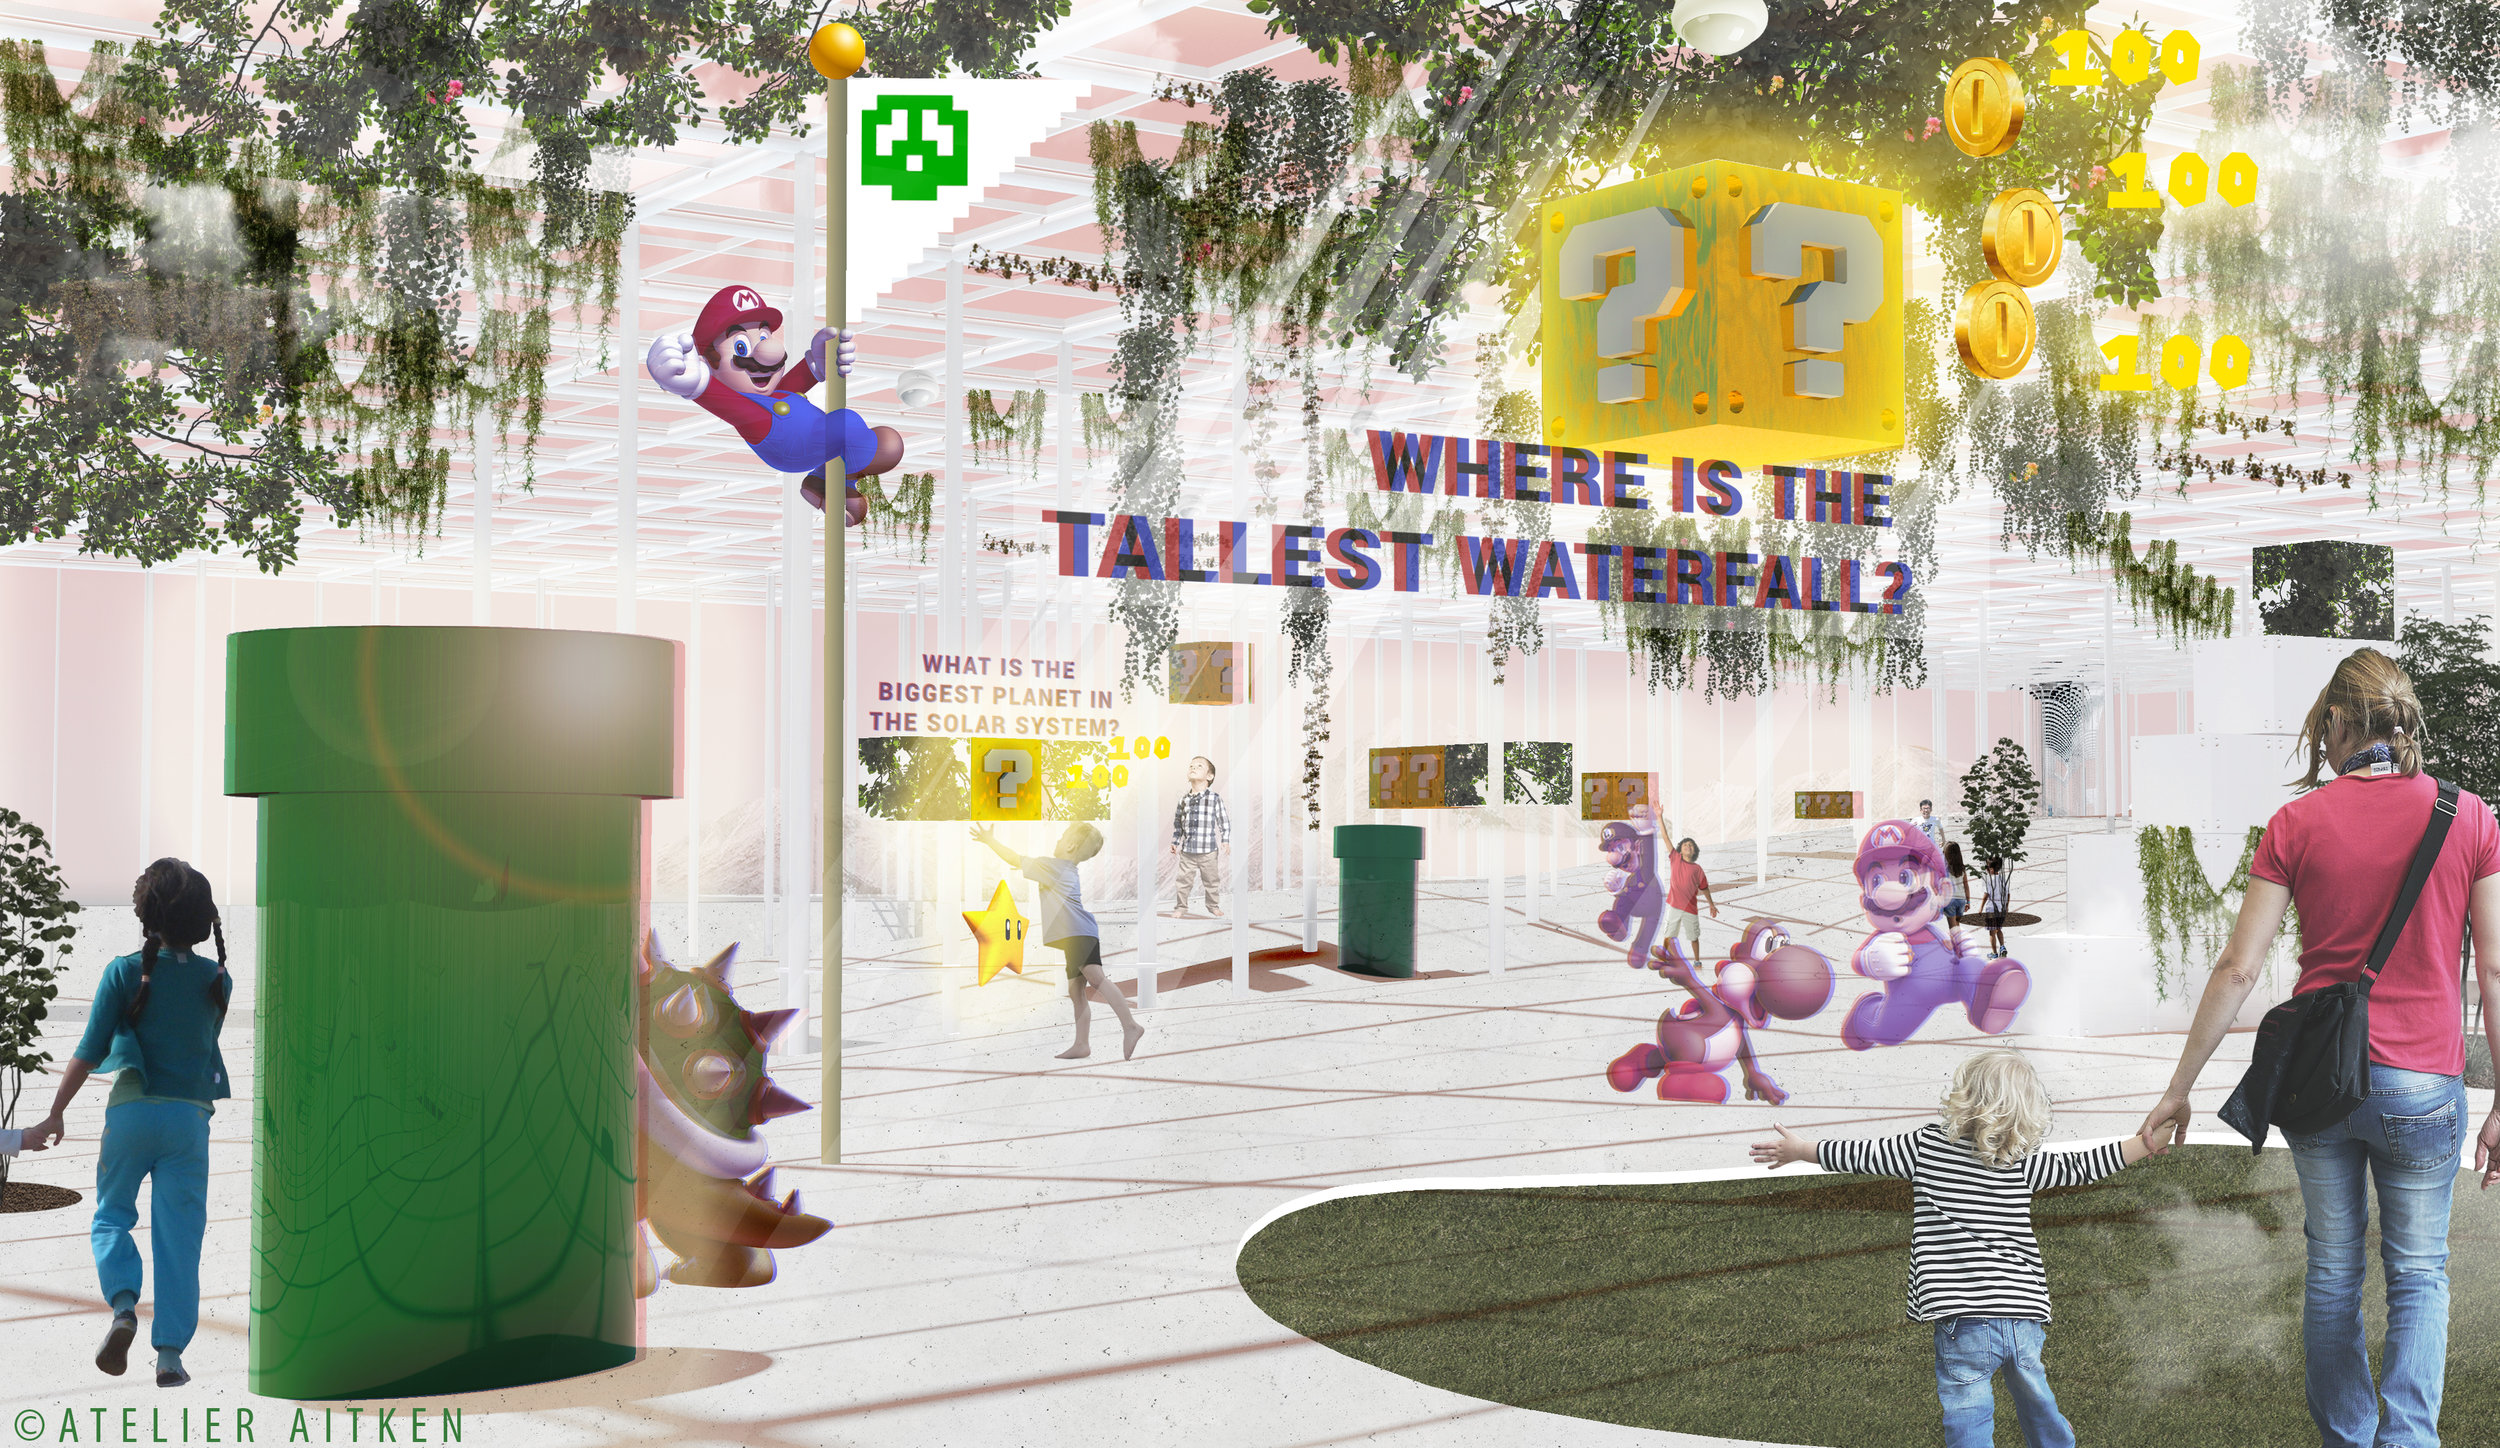 Learning through Gaming: This mixed reality playscape is how we imagine children could be learning at the school of the future.